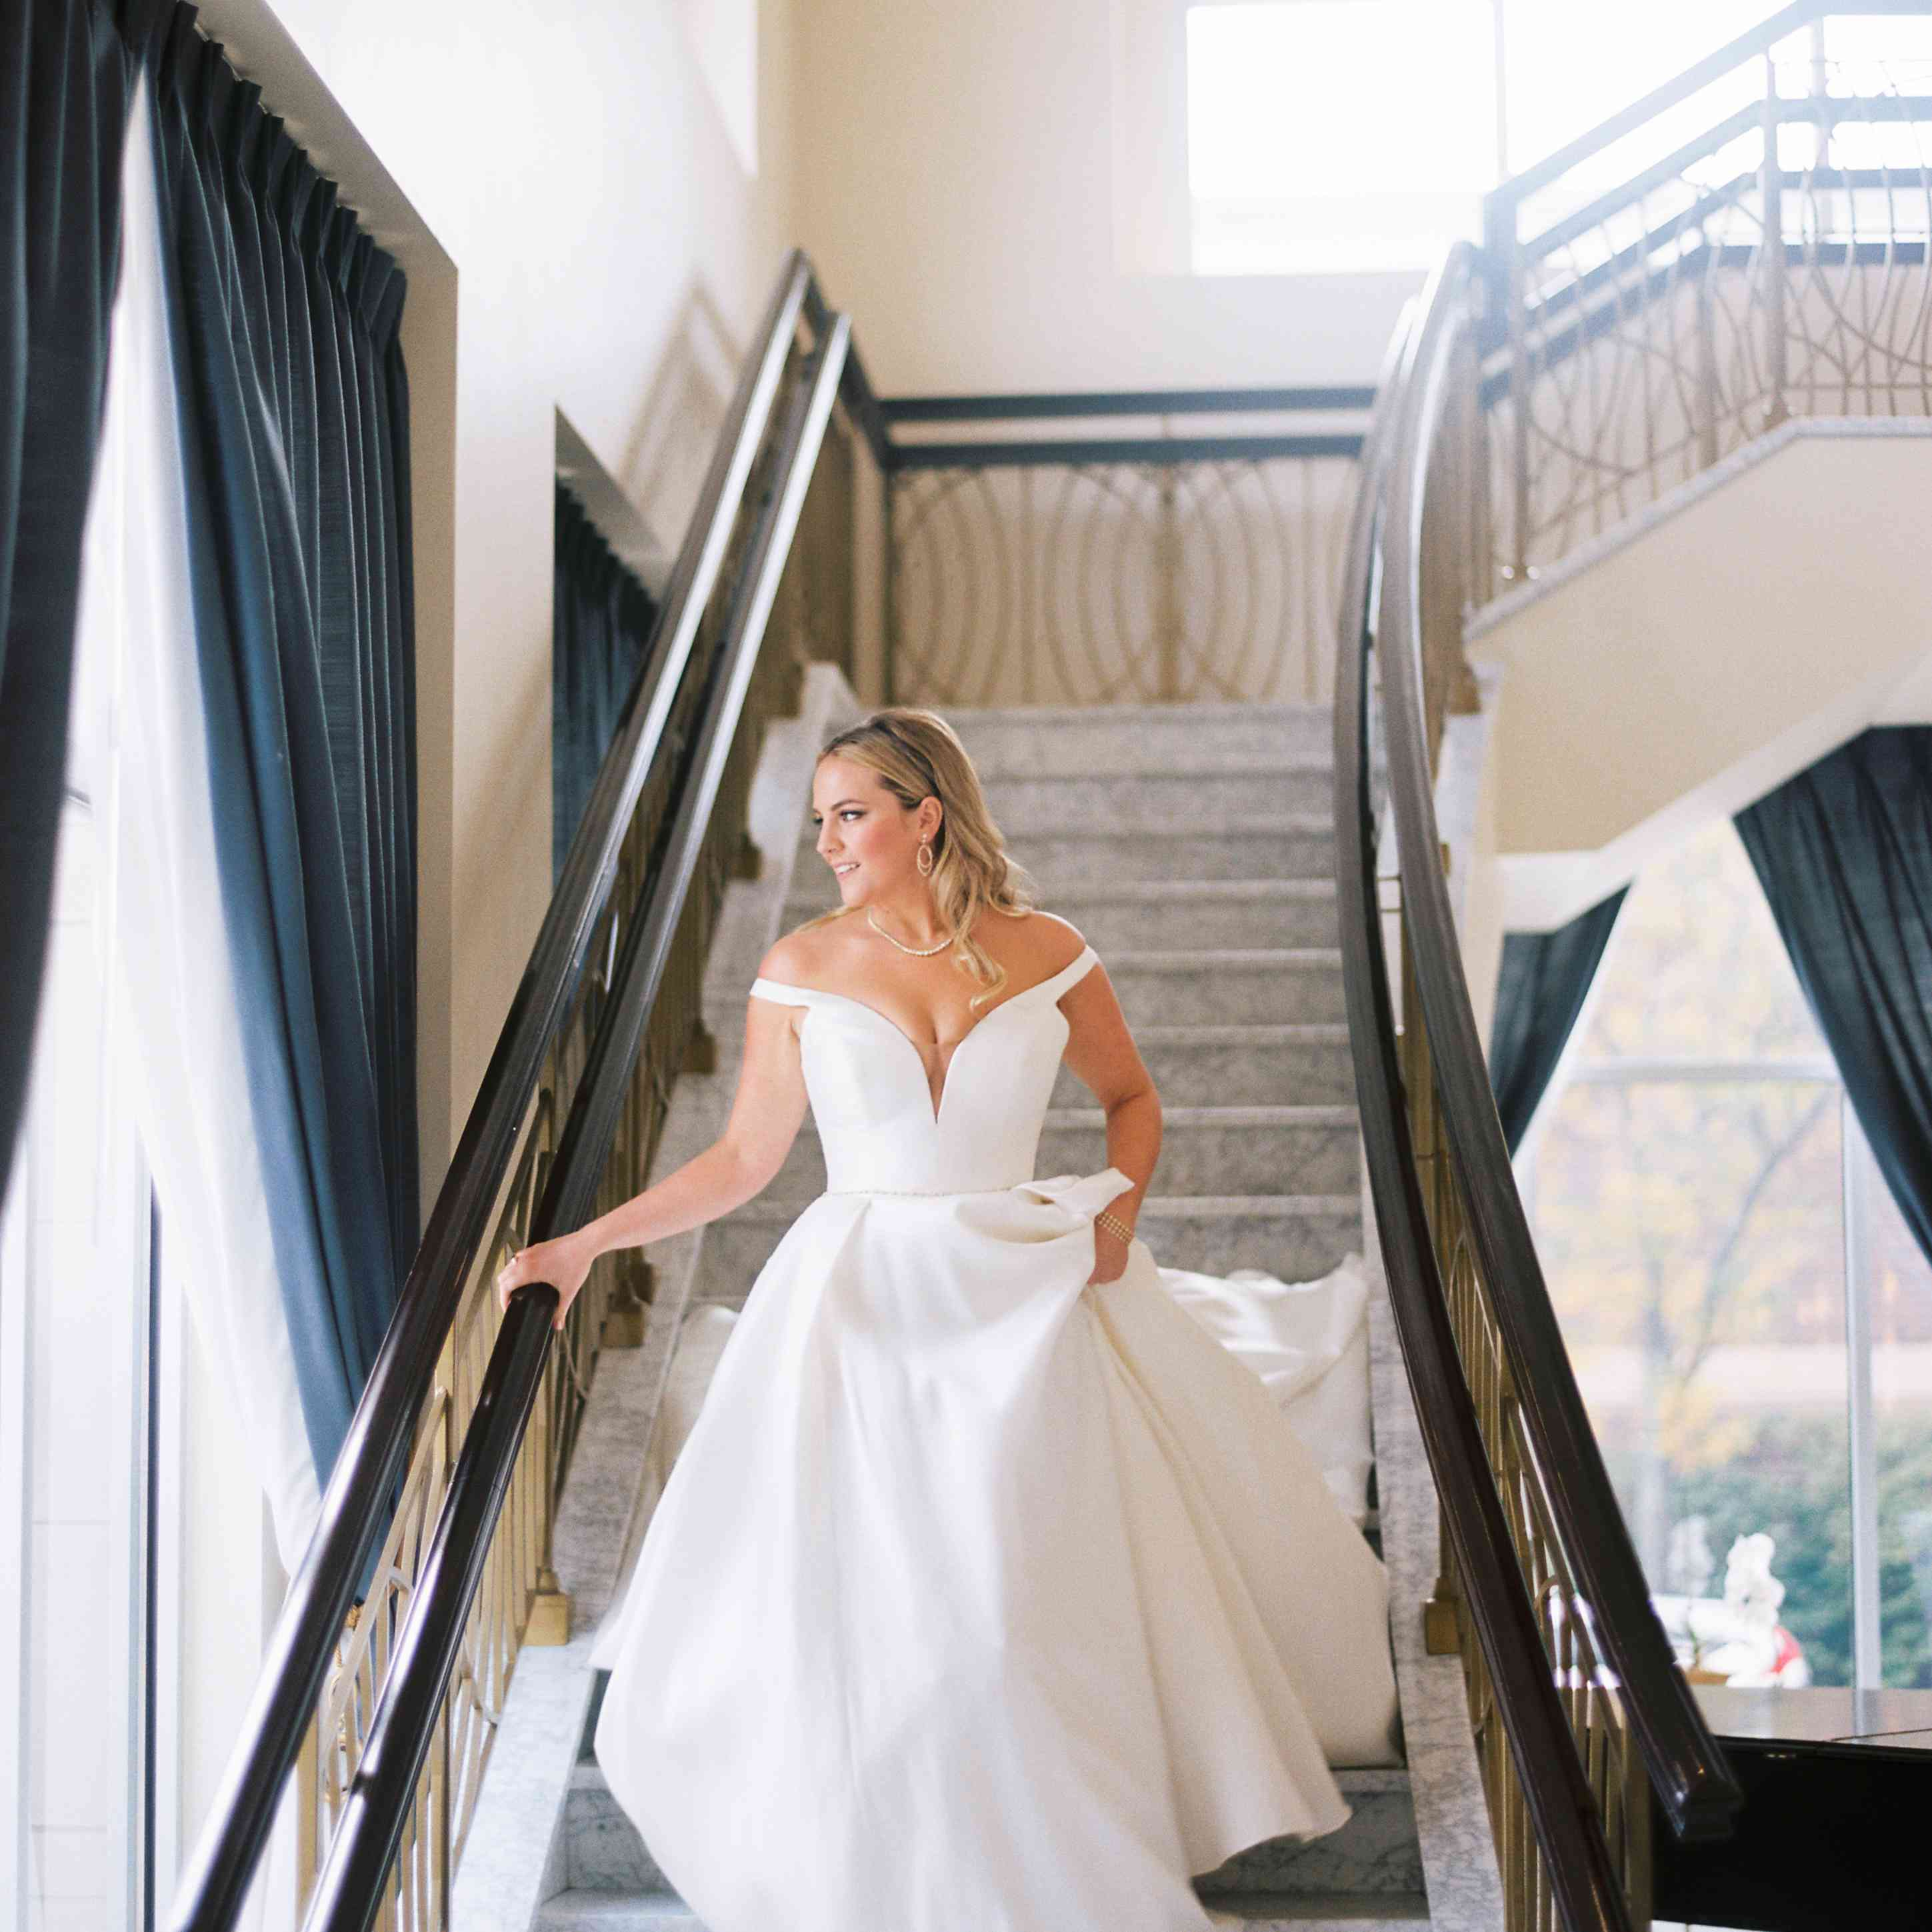 The bride on her wedding day